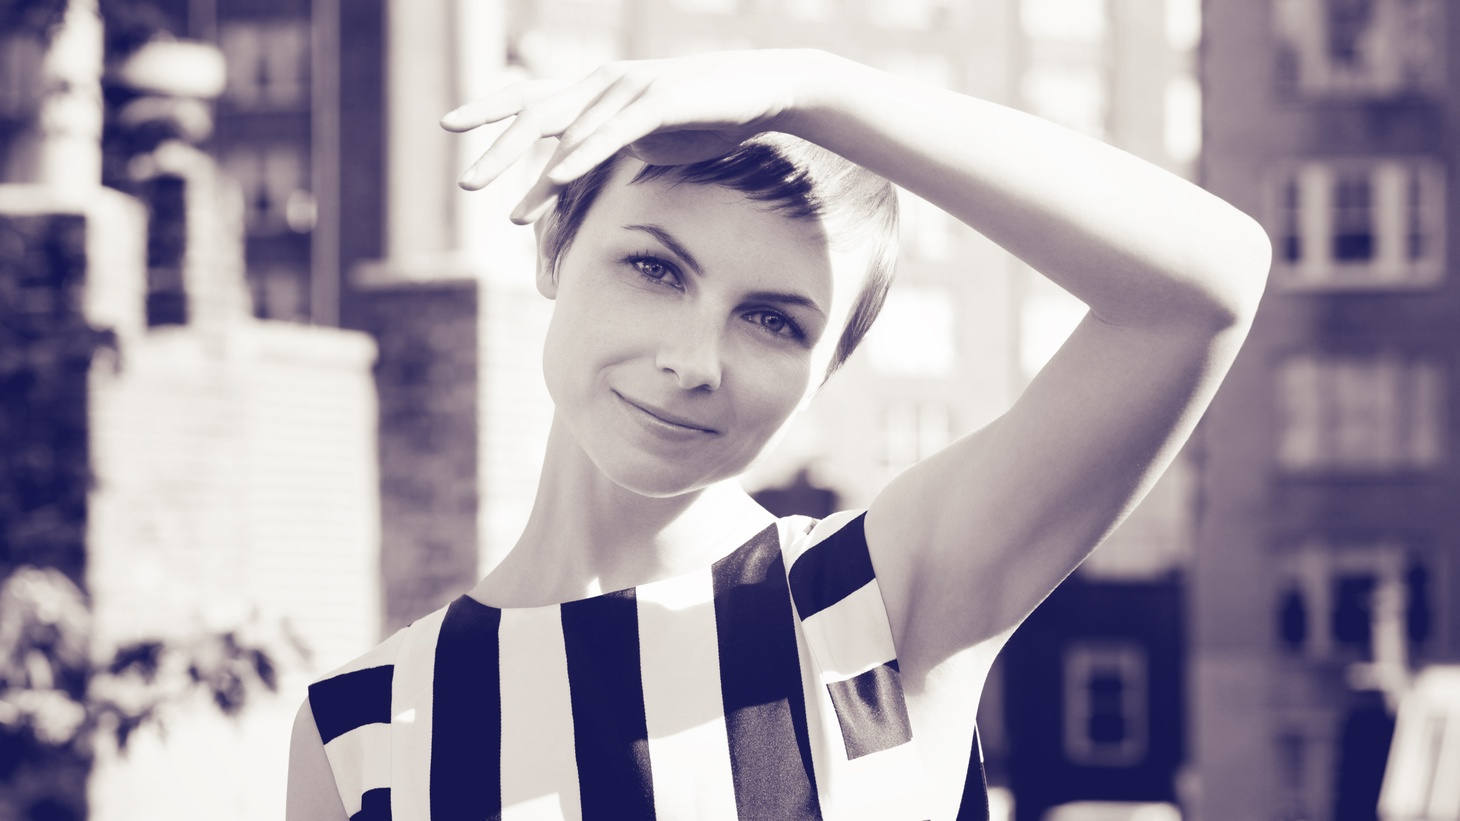 """Texas native Kat Edmonson has a sophisticated cosmopolitan sound that is reminiscent of cool jazz vocalists of the late 50's and 60's. Today's Top Tune is a sexy song called """"Rainy Day Woman""""."""